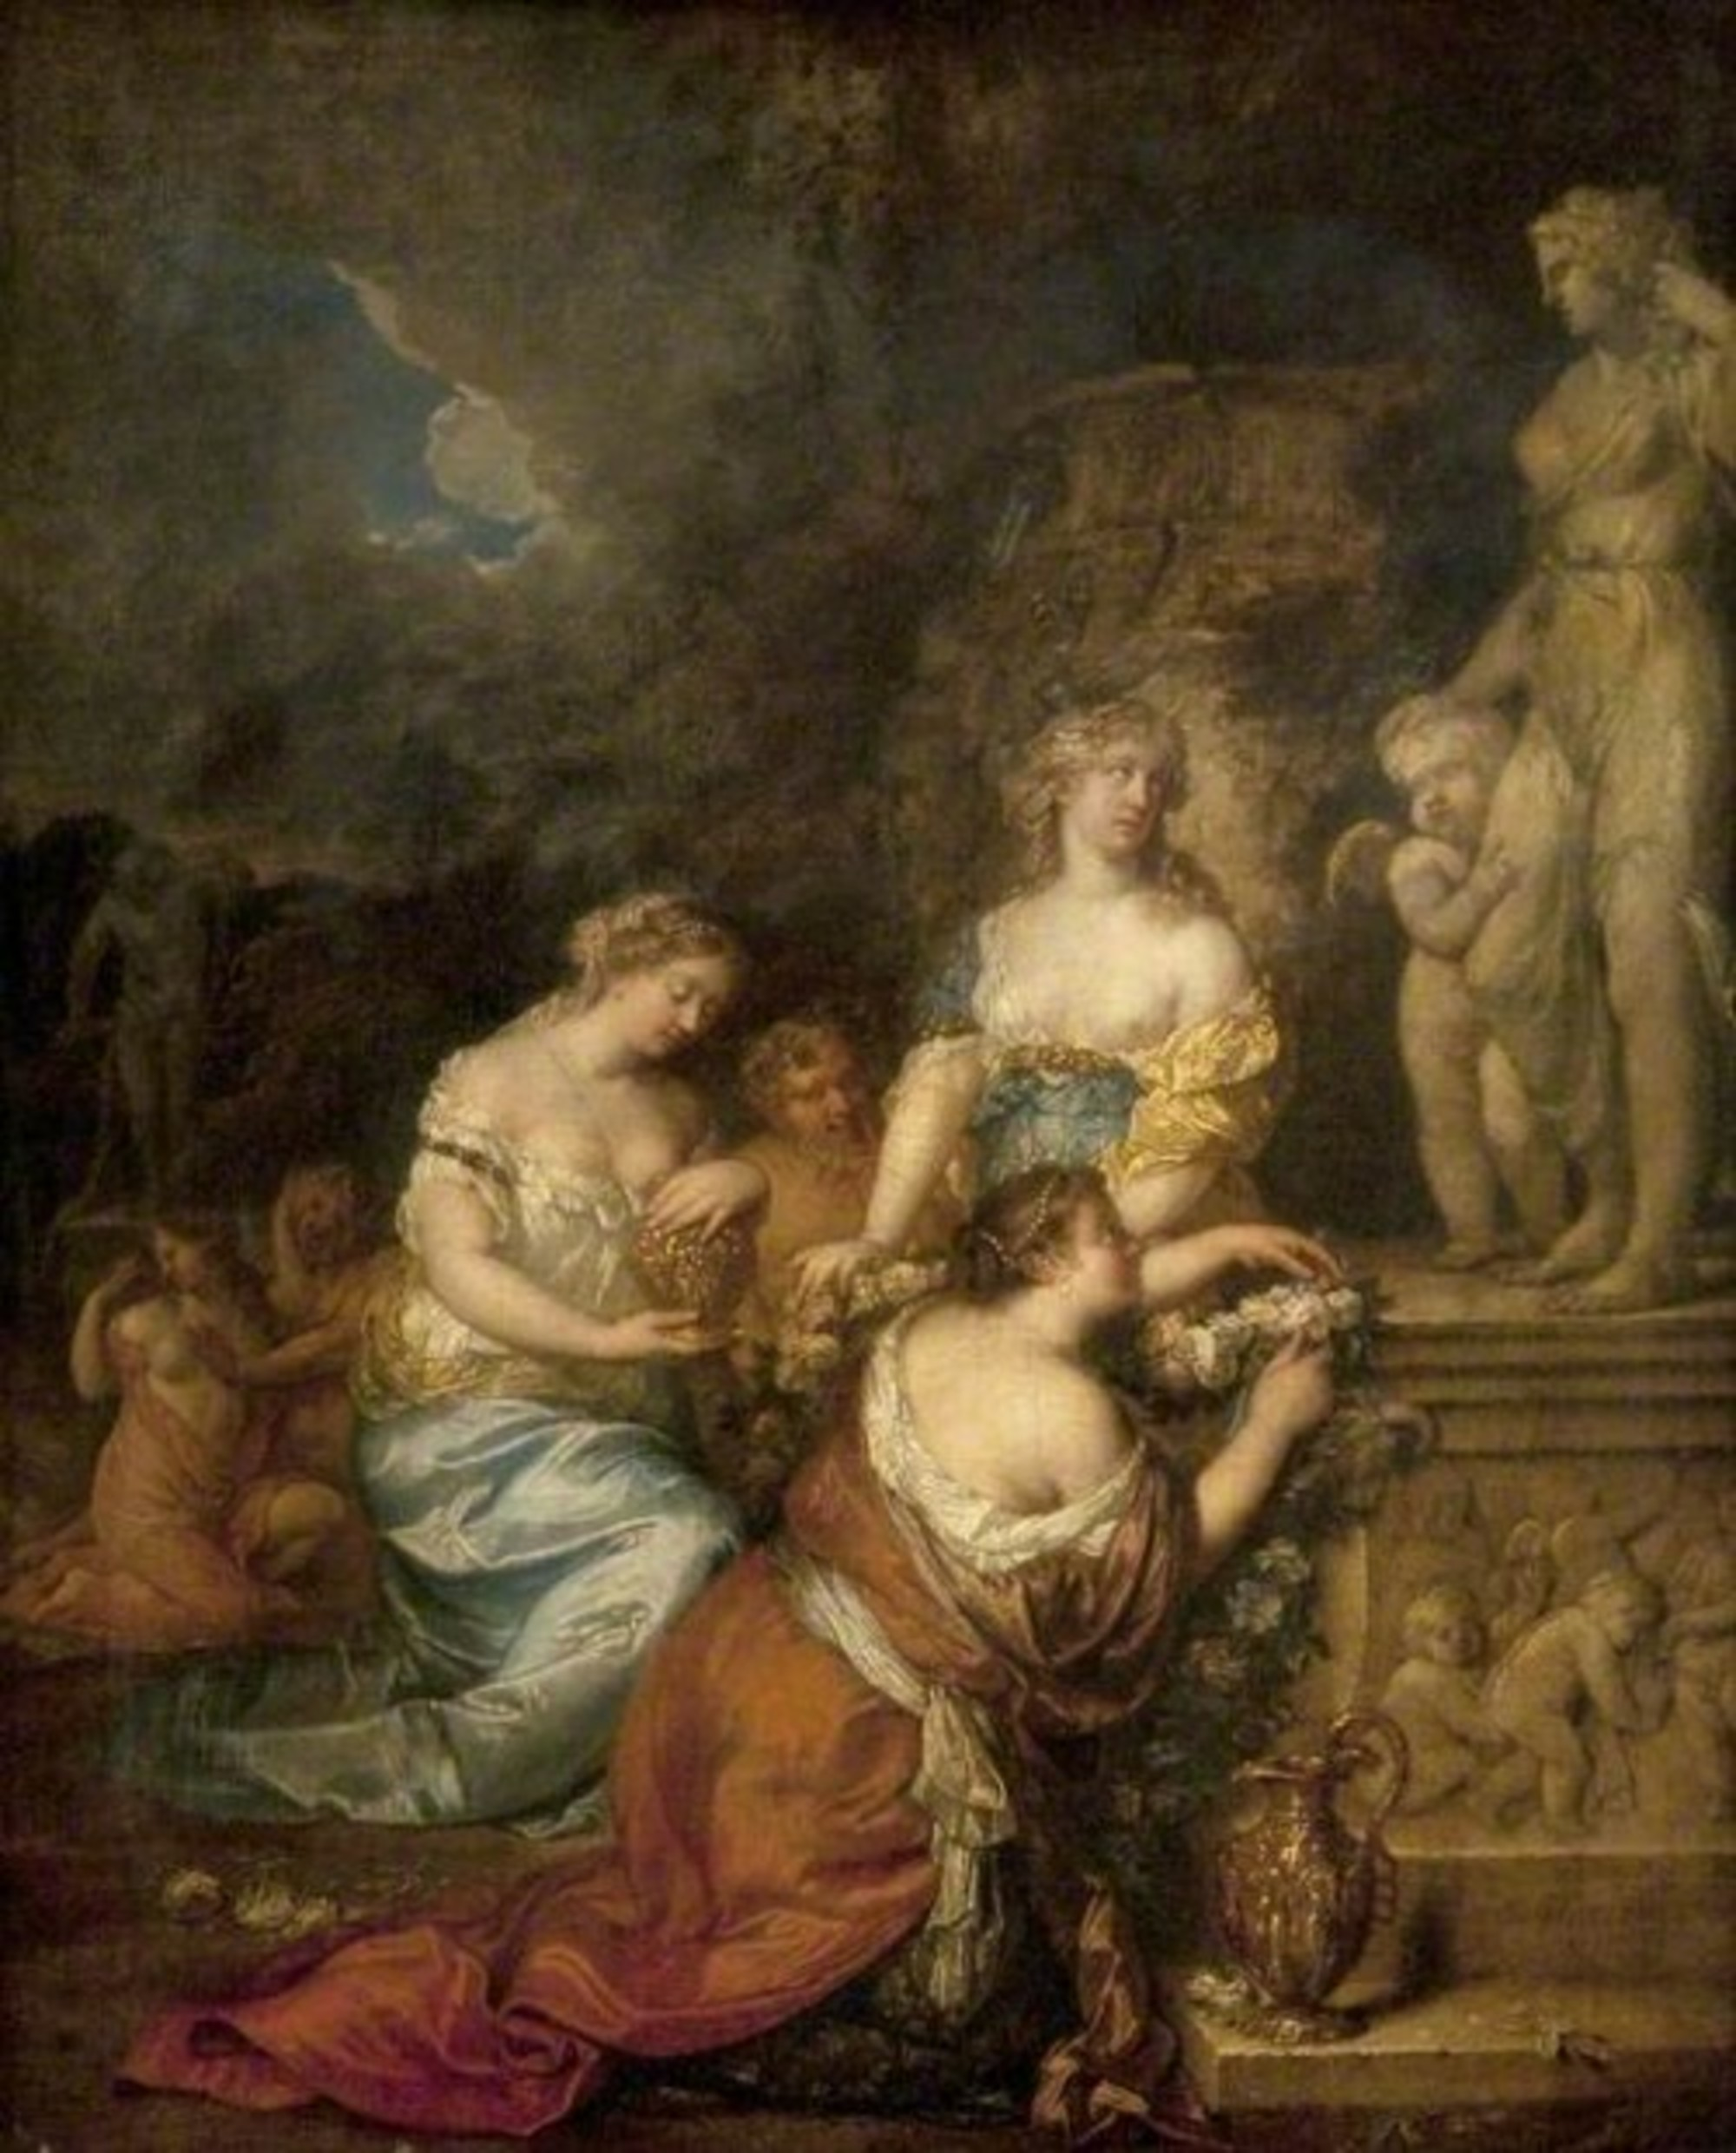 Caspar-Netscher---Nymphs-Laying-Offerings-before-a-Statue-of-Venus-and-Cupid-GL-GM-80-001.jpg